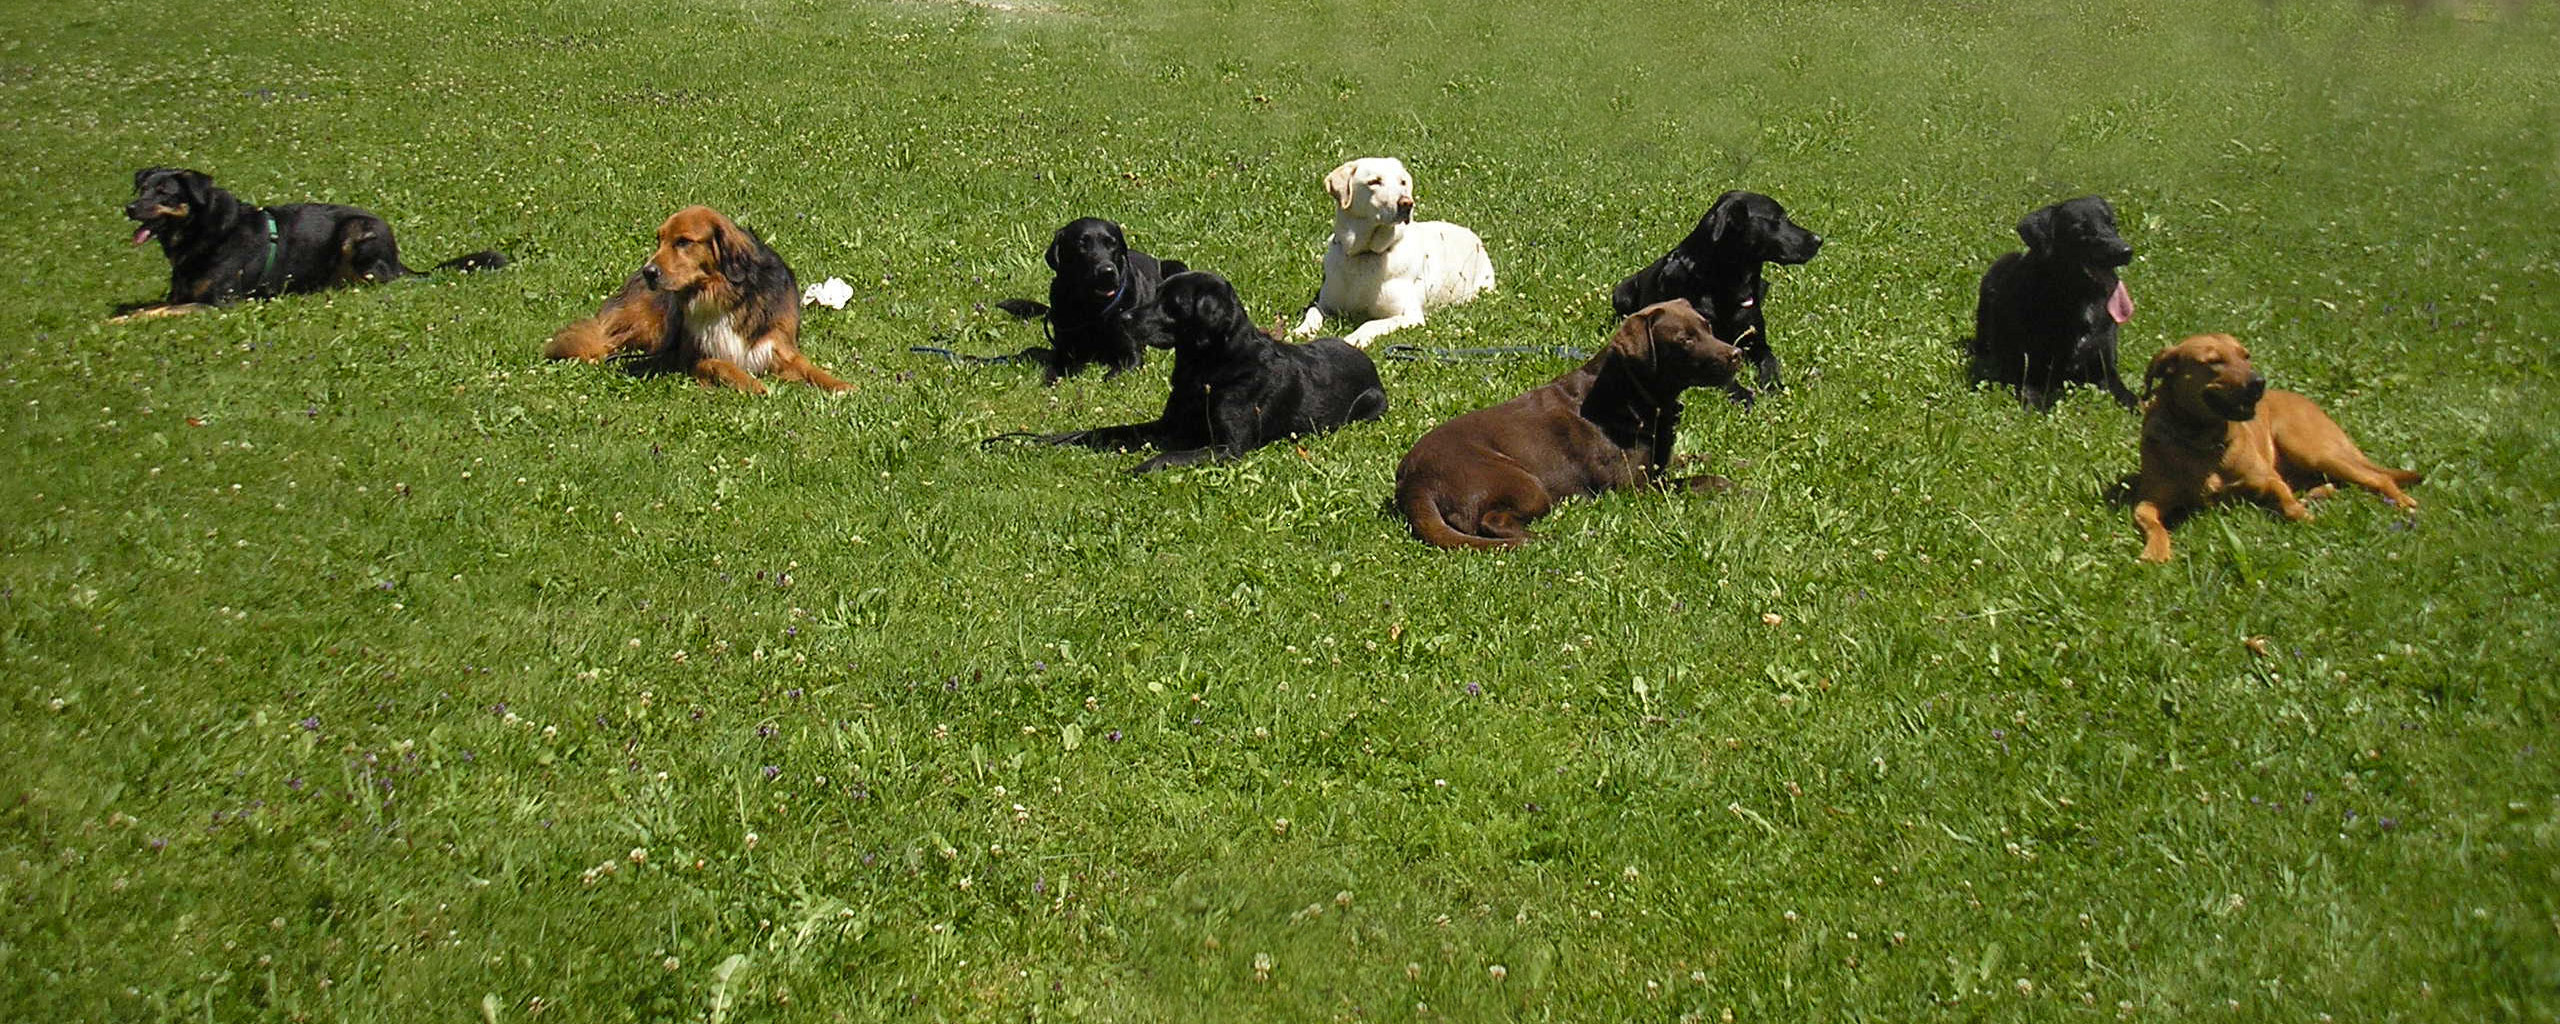 lech-camping-augsburg-service-hundeschule